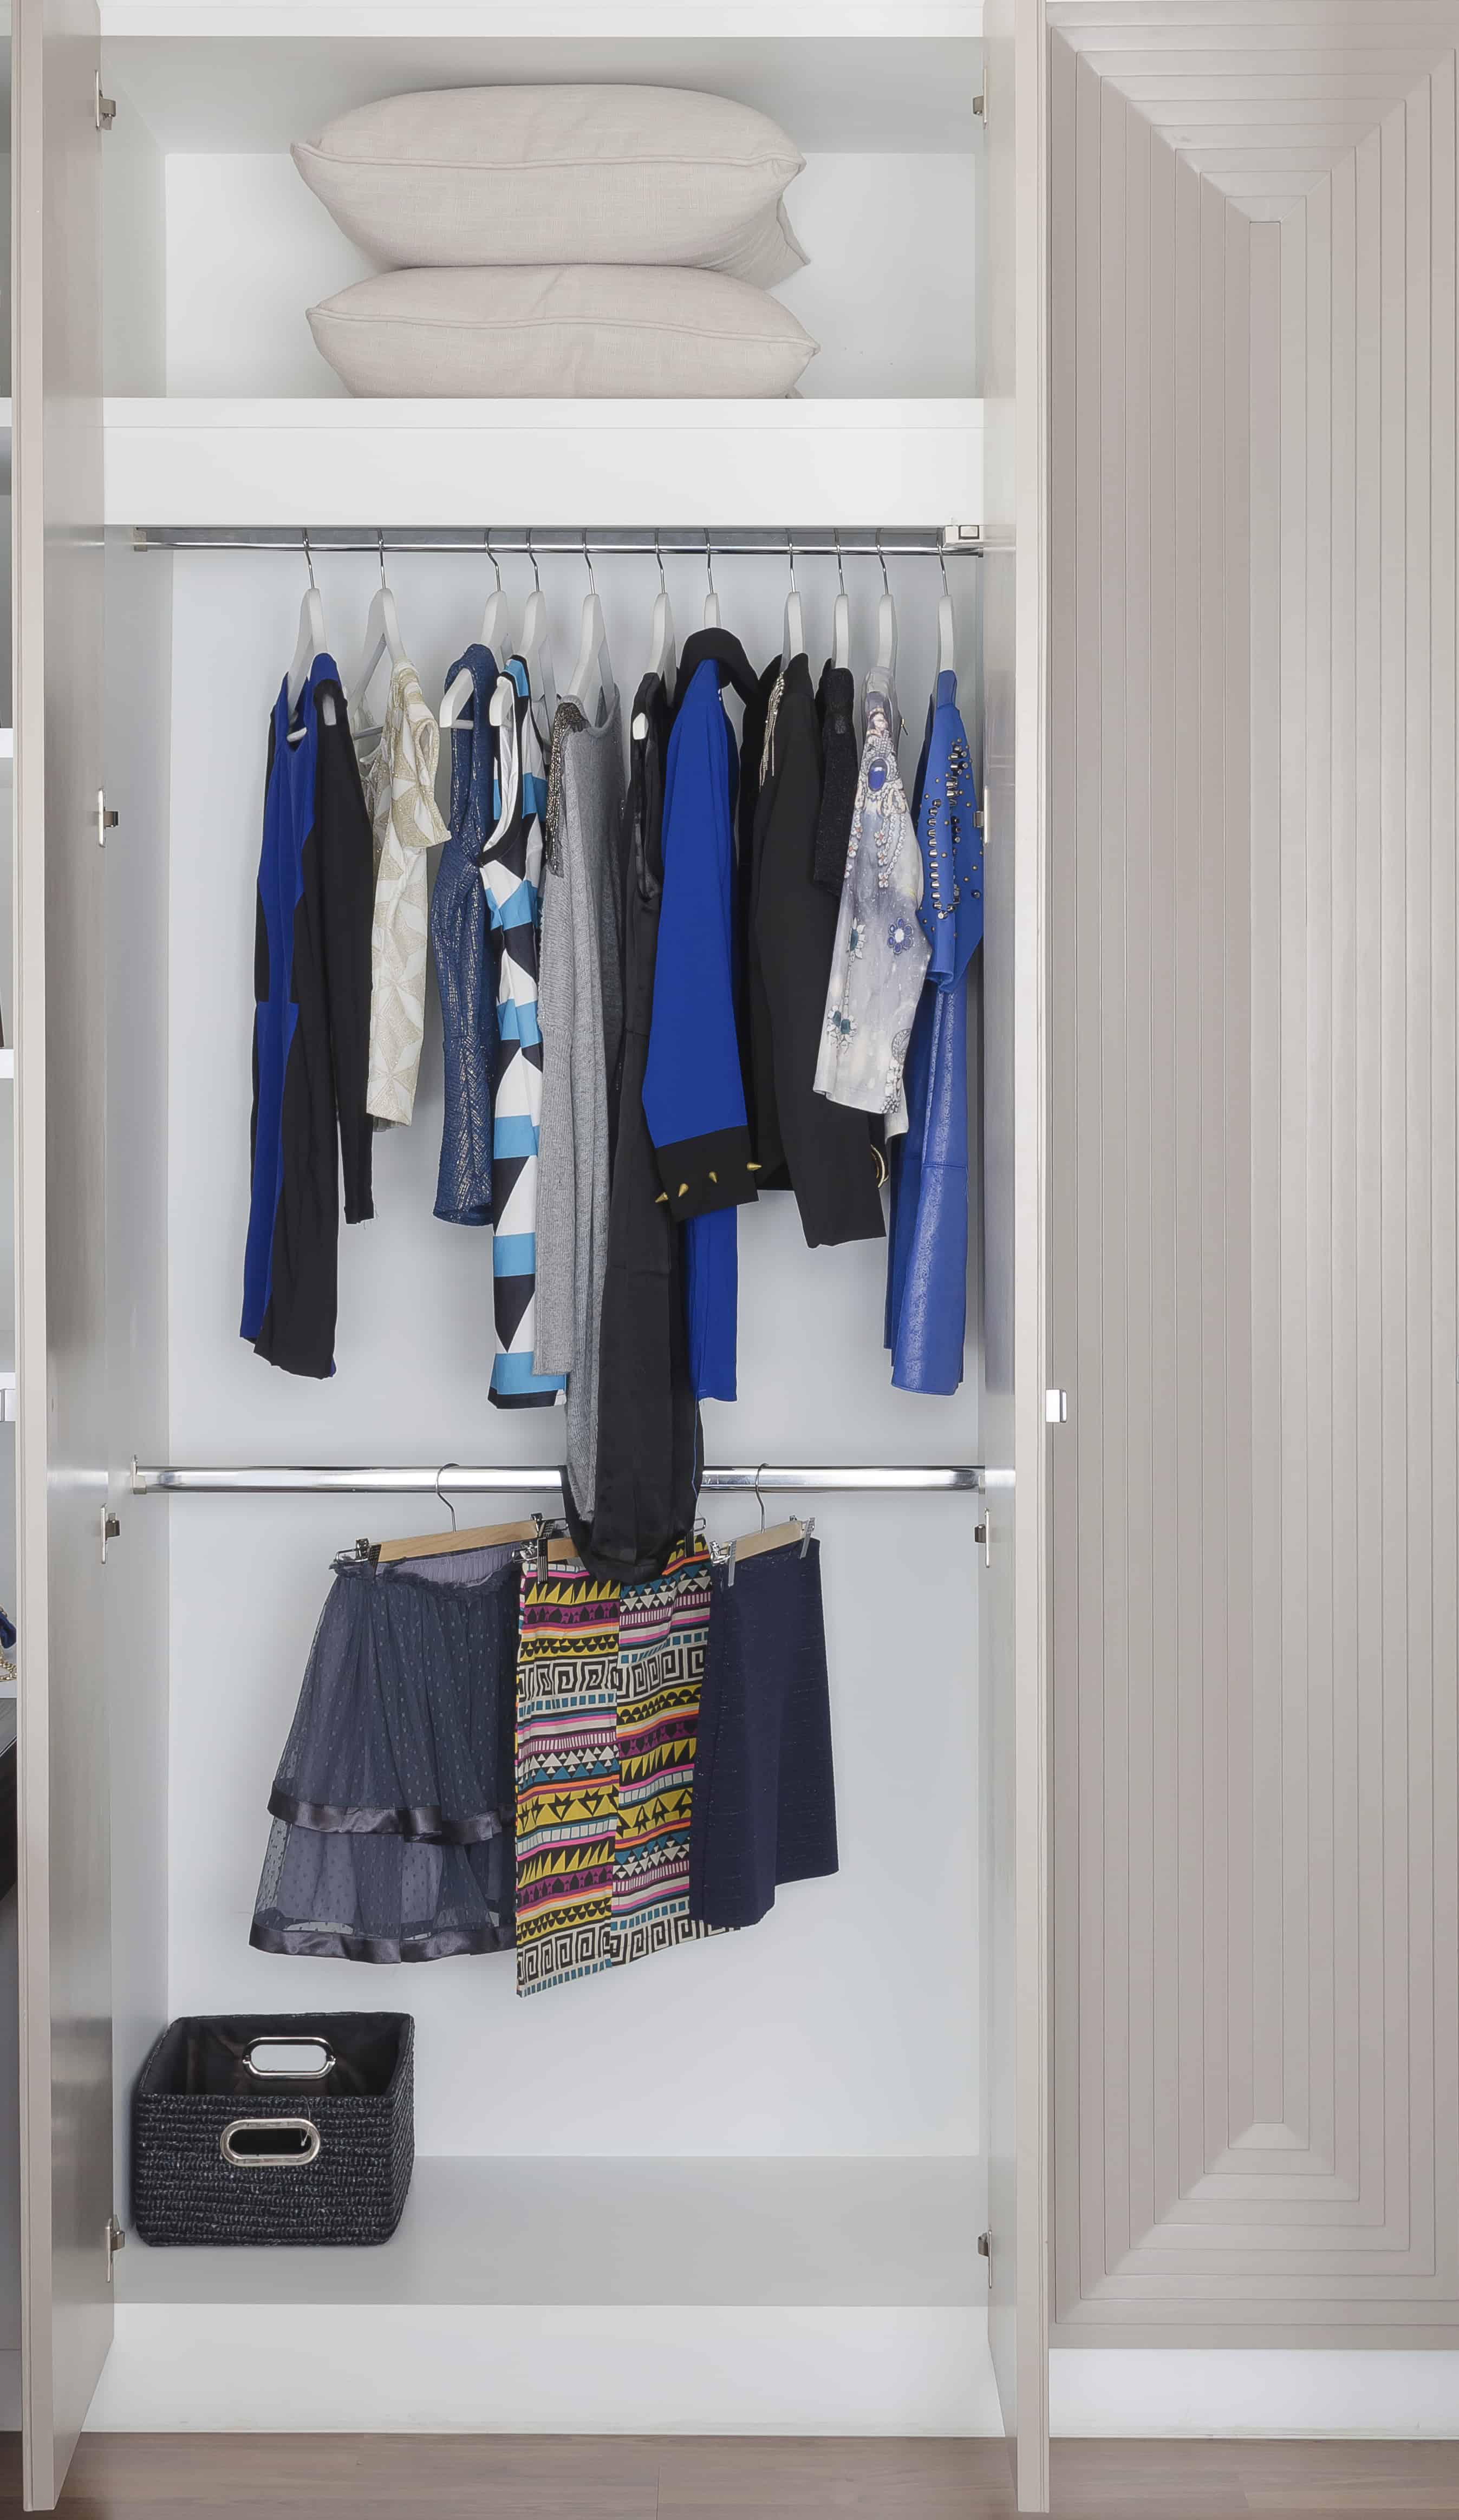 stock home flat illustration depositphotos design interior wardrobe vector open with clothes tidy